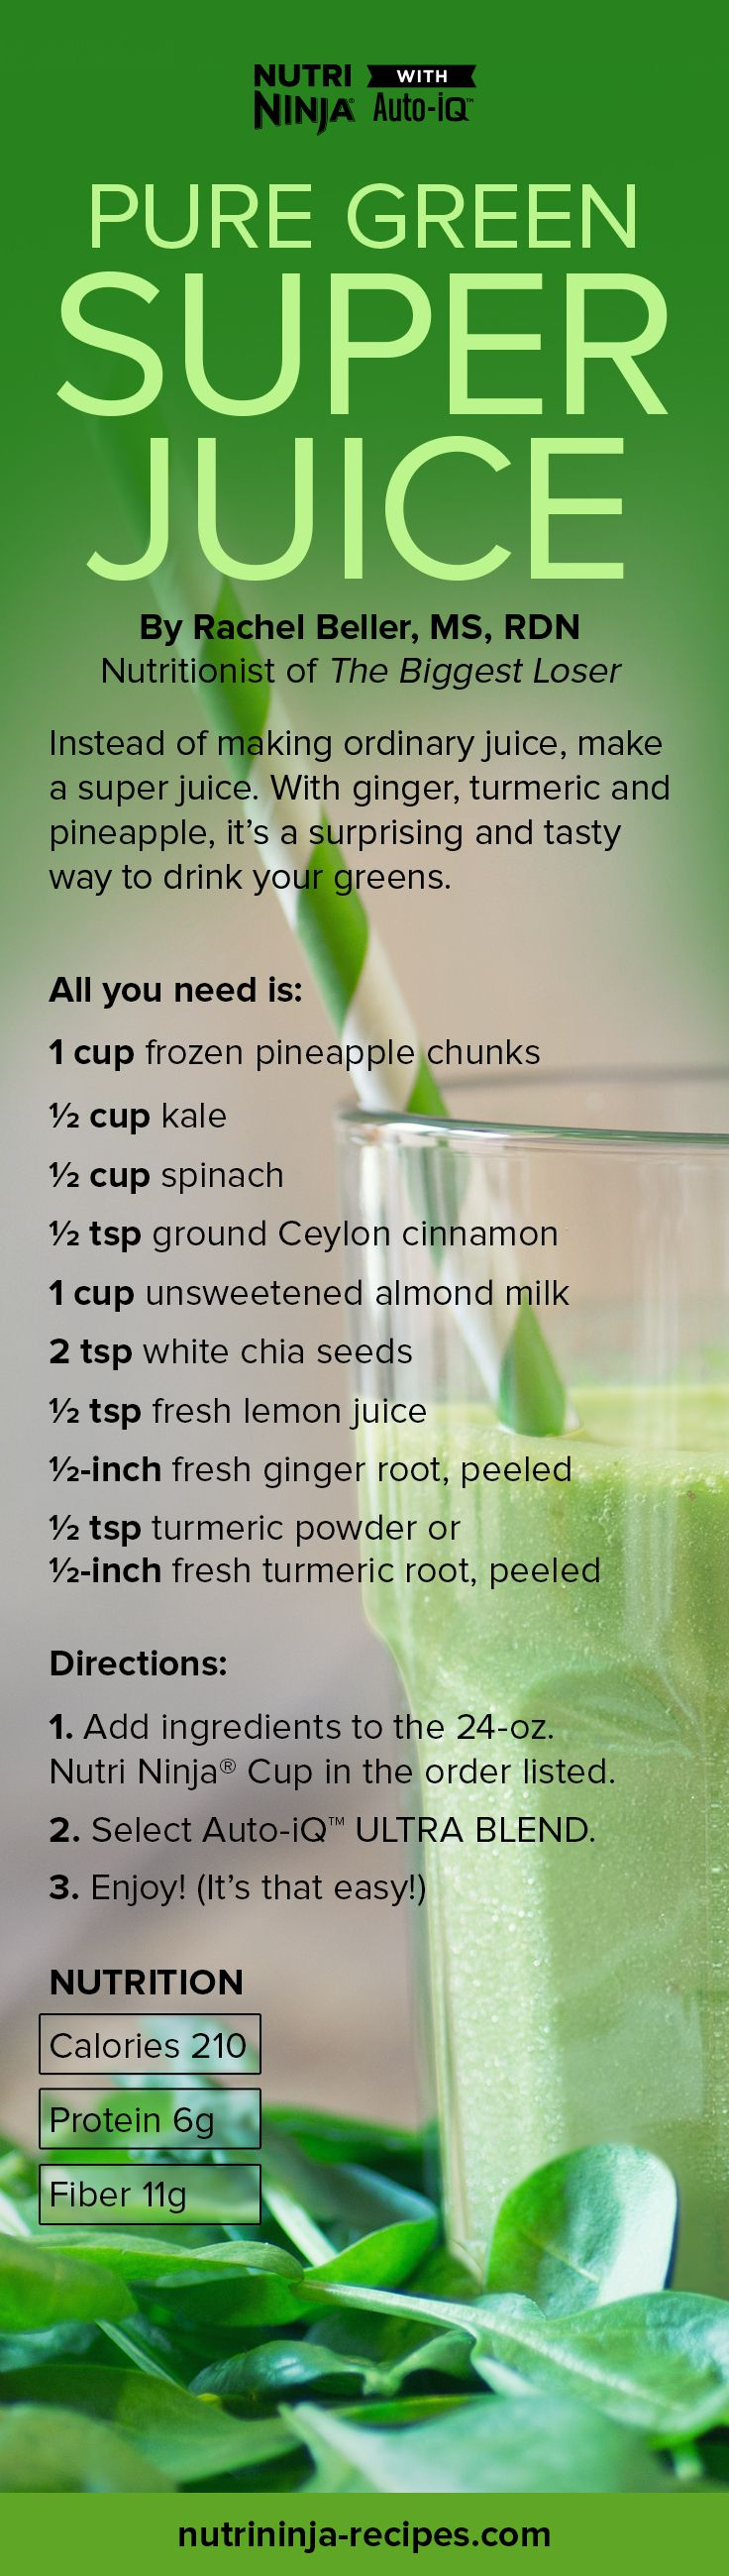 Turmeric, ginger, chia seeds and more turn a glass of pineapple and leafy greens into a 210-calorie super juice. Give it a try.